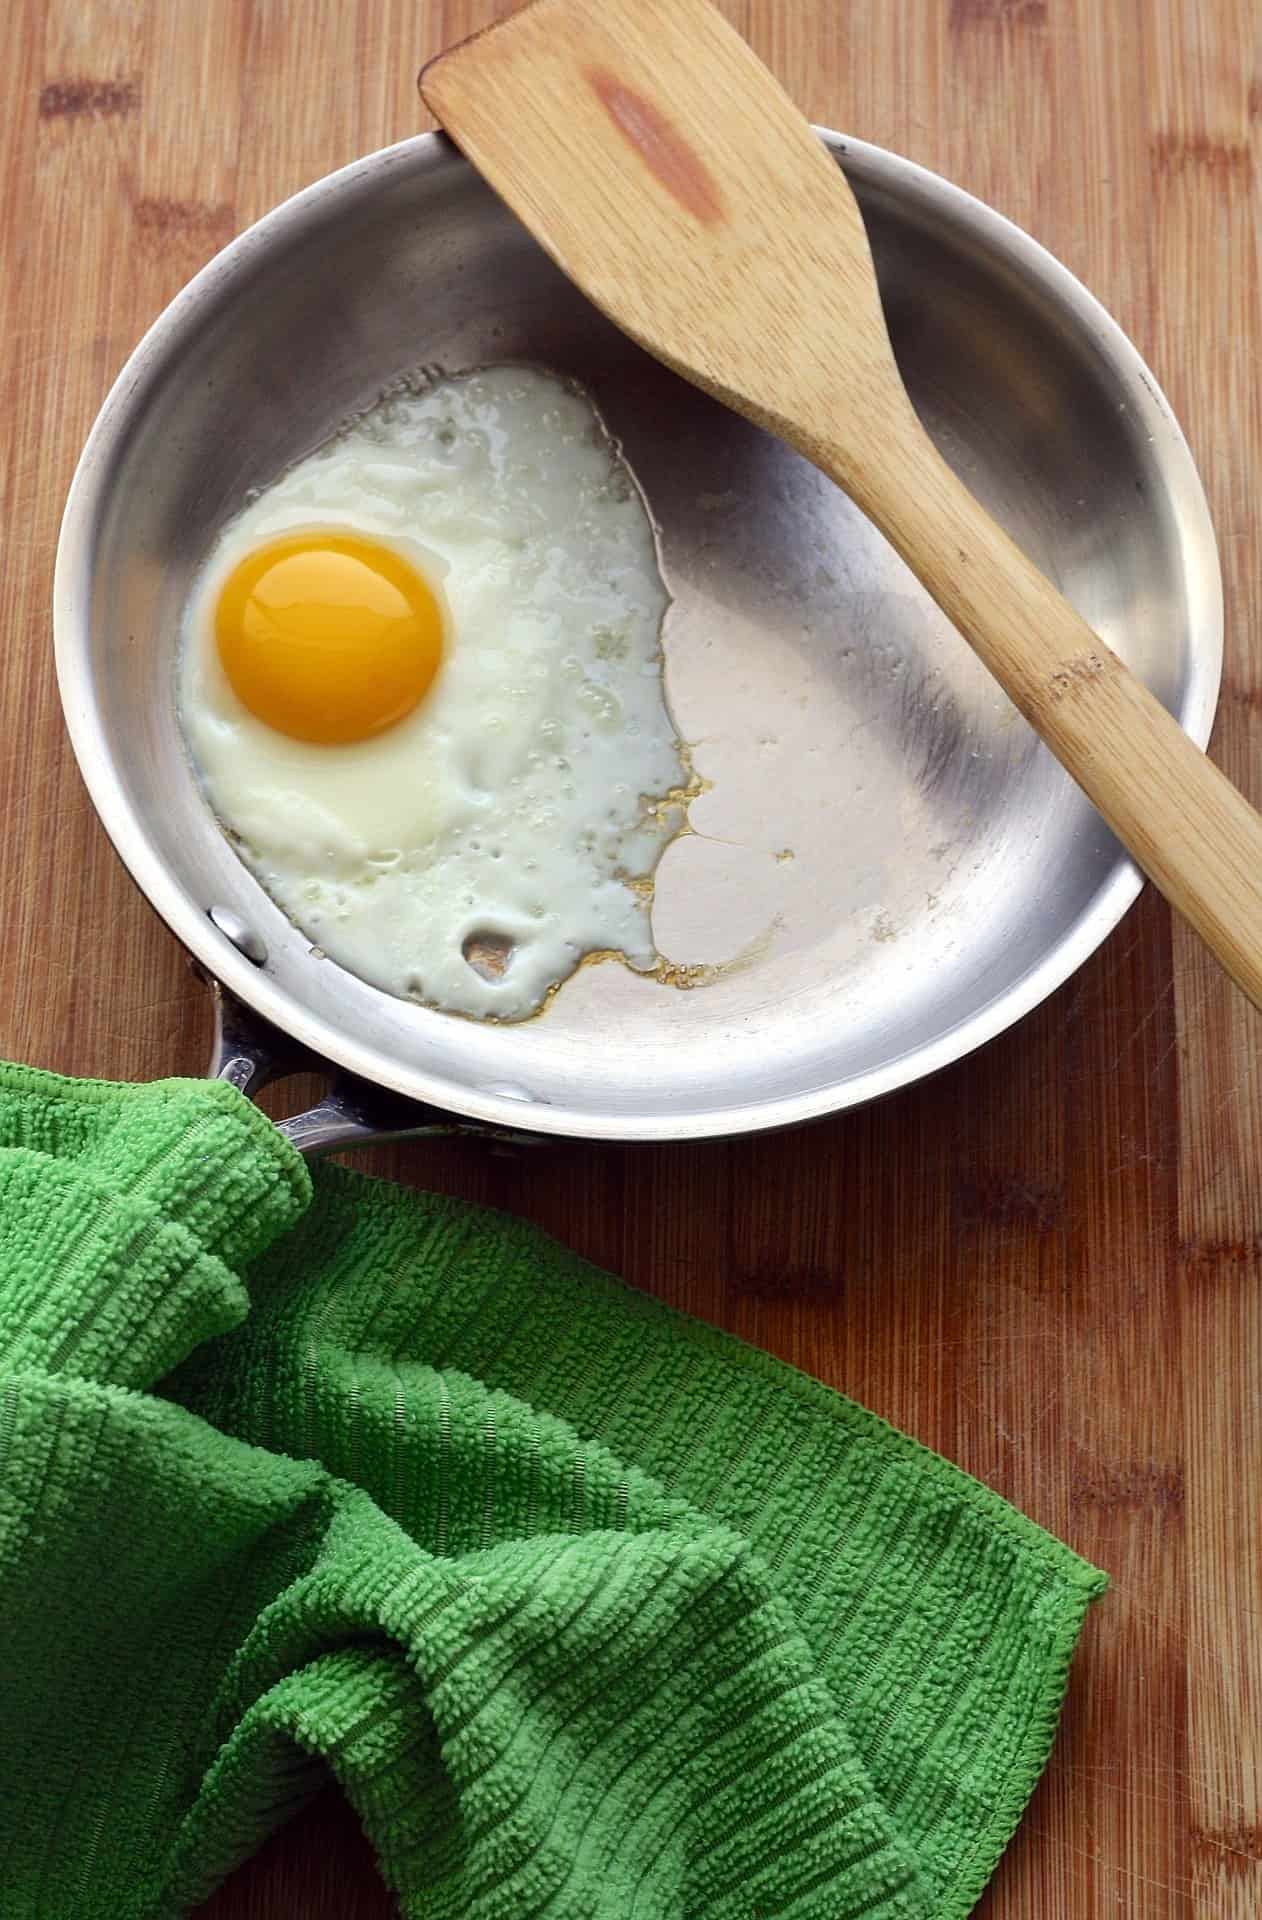 Egg in a pan